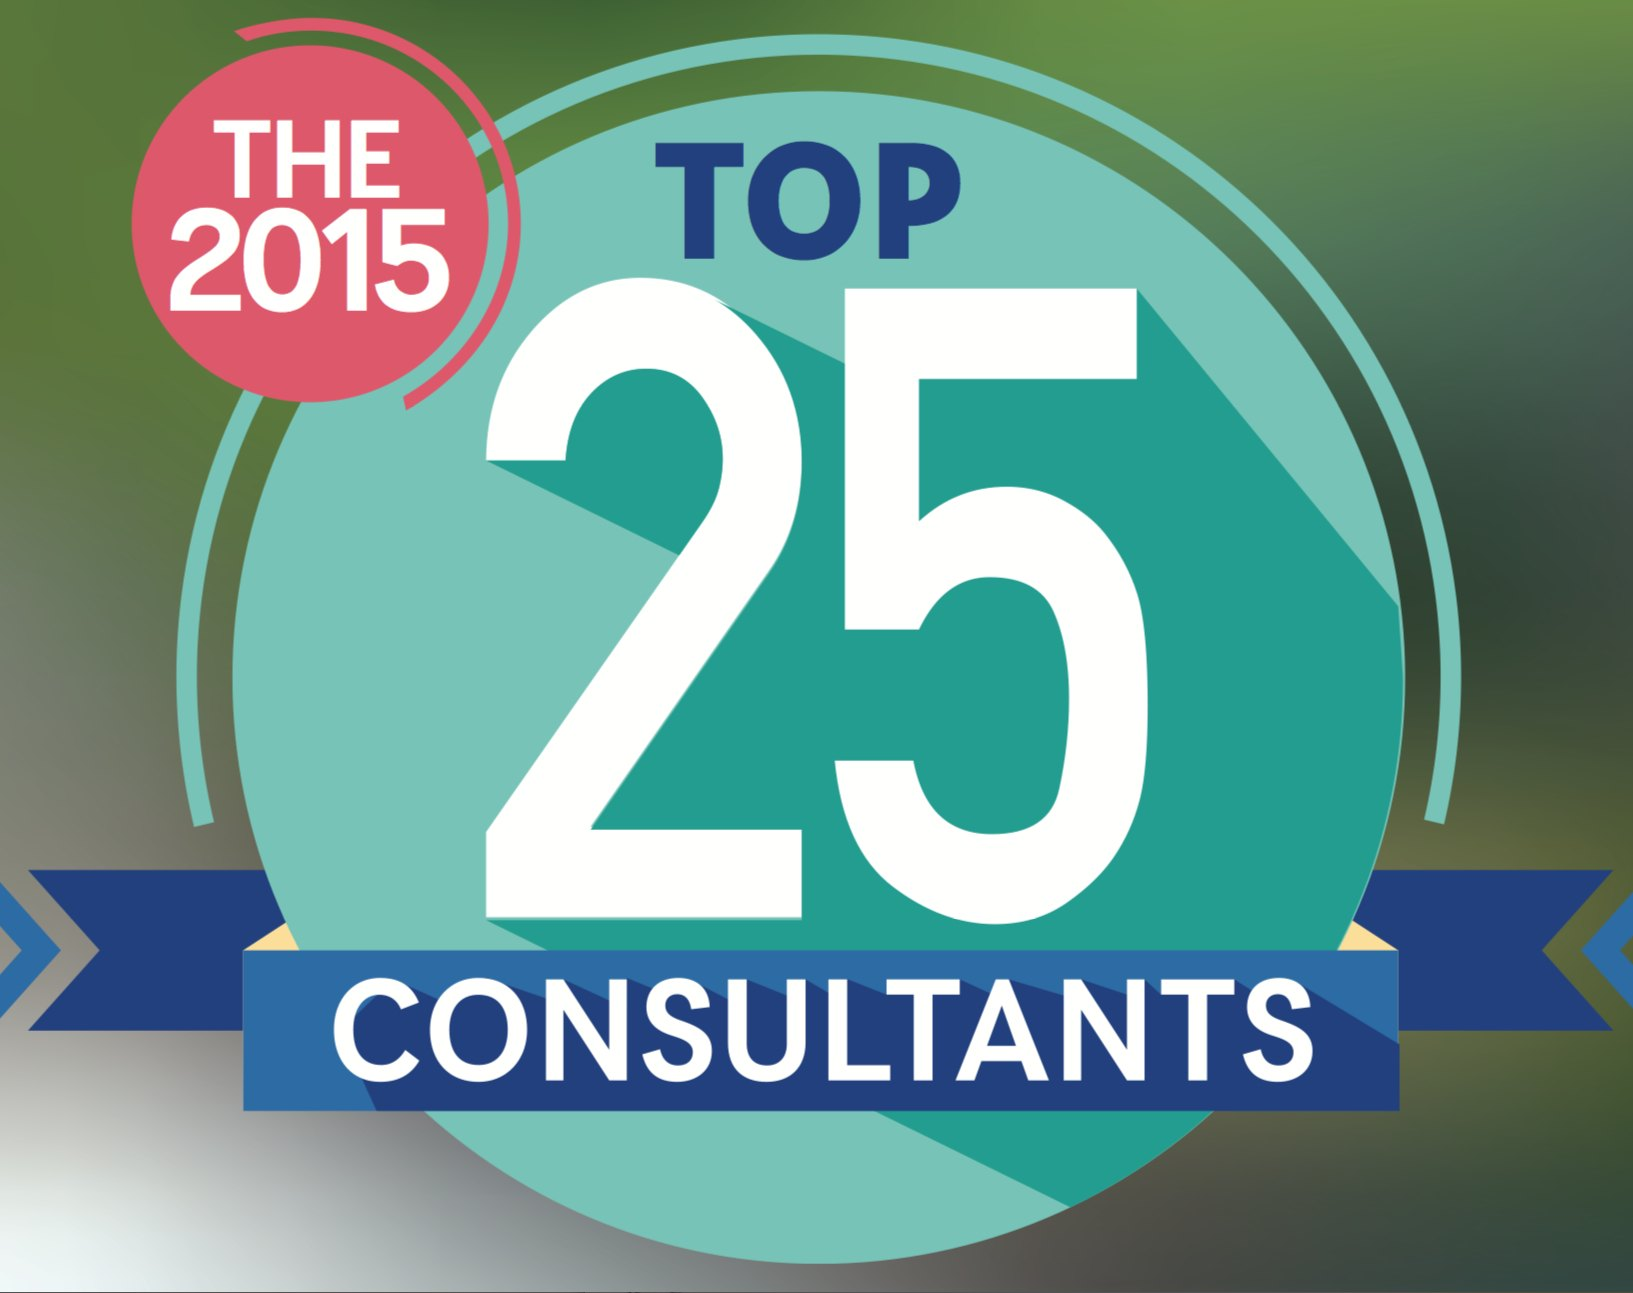 The Top 25 Consultants 2015